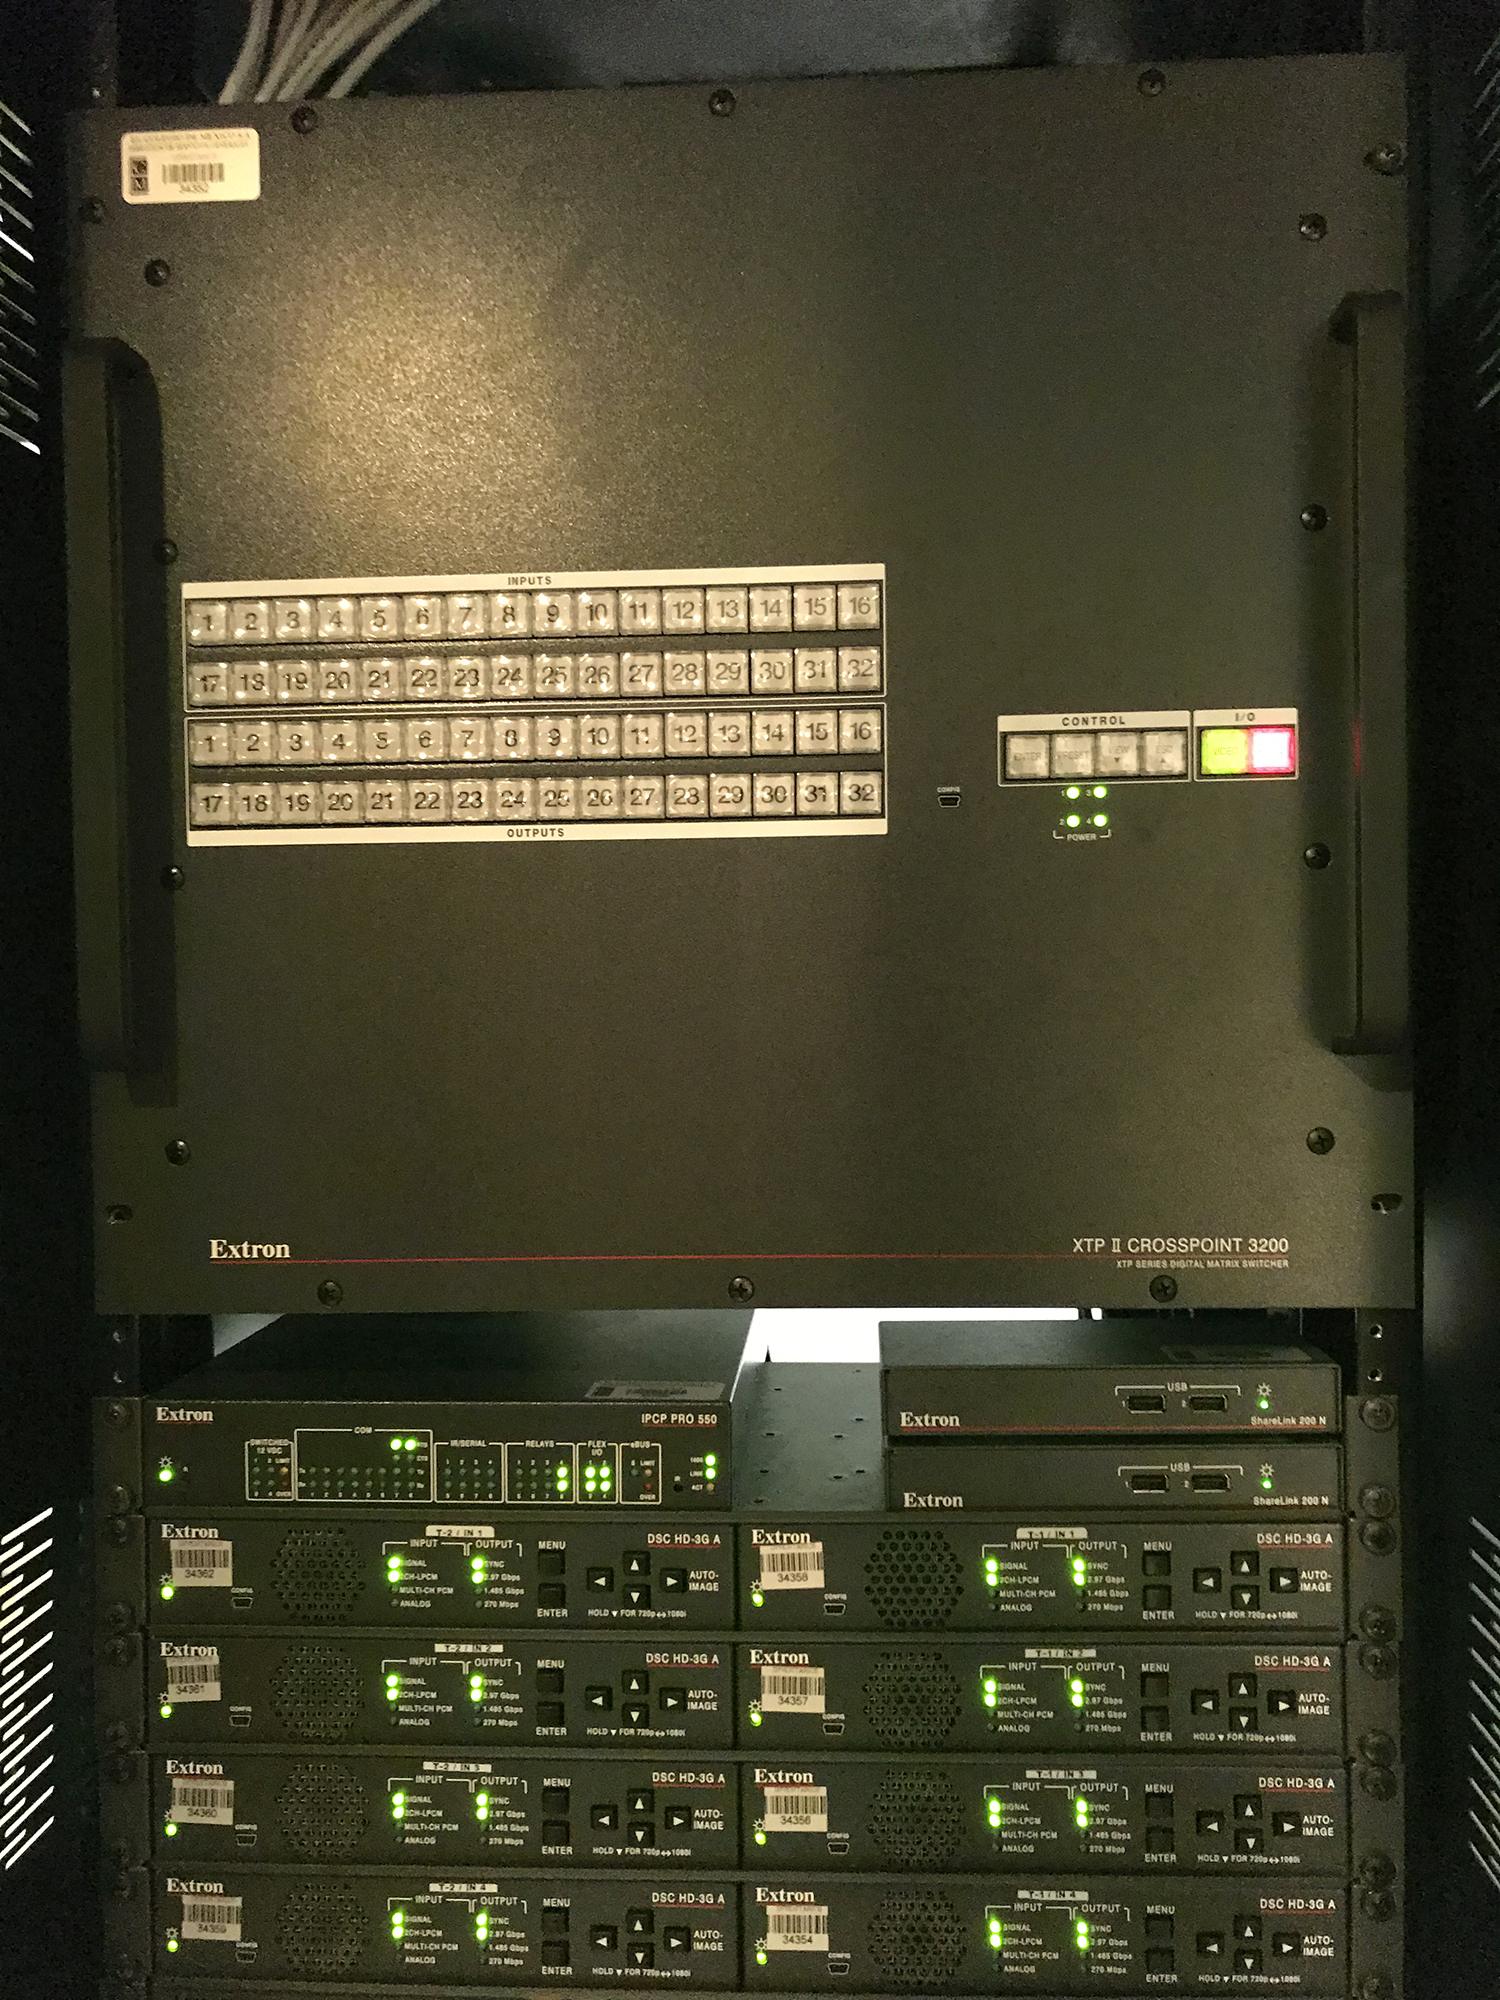 An Extron XTP II CrossPoint 3200 matrix switcher